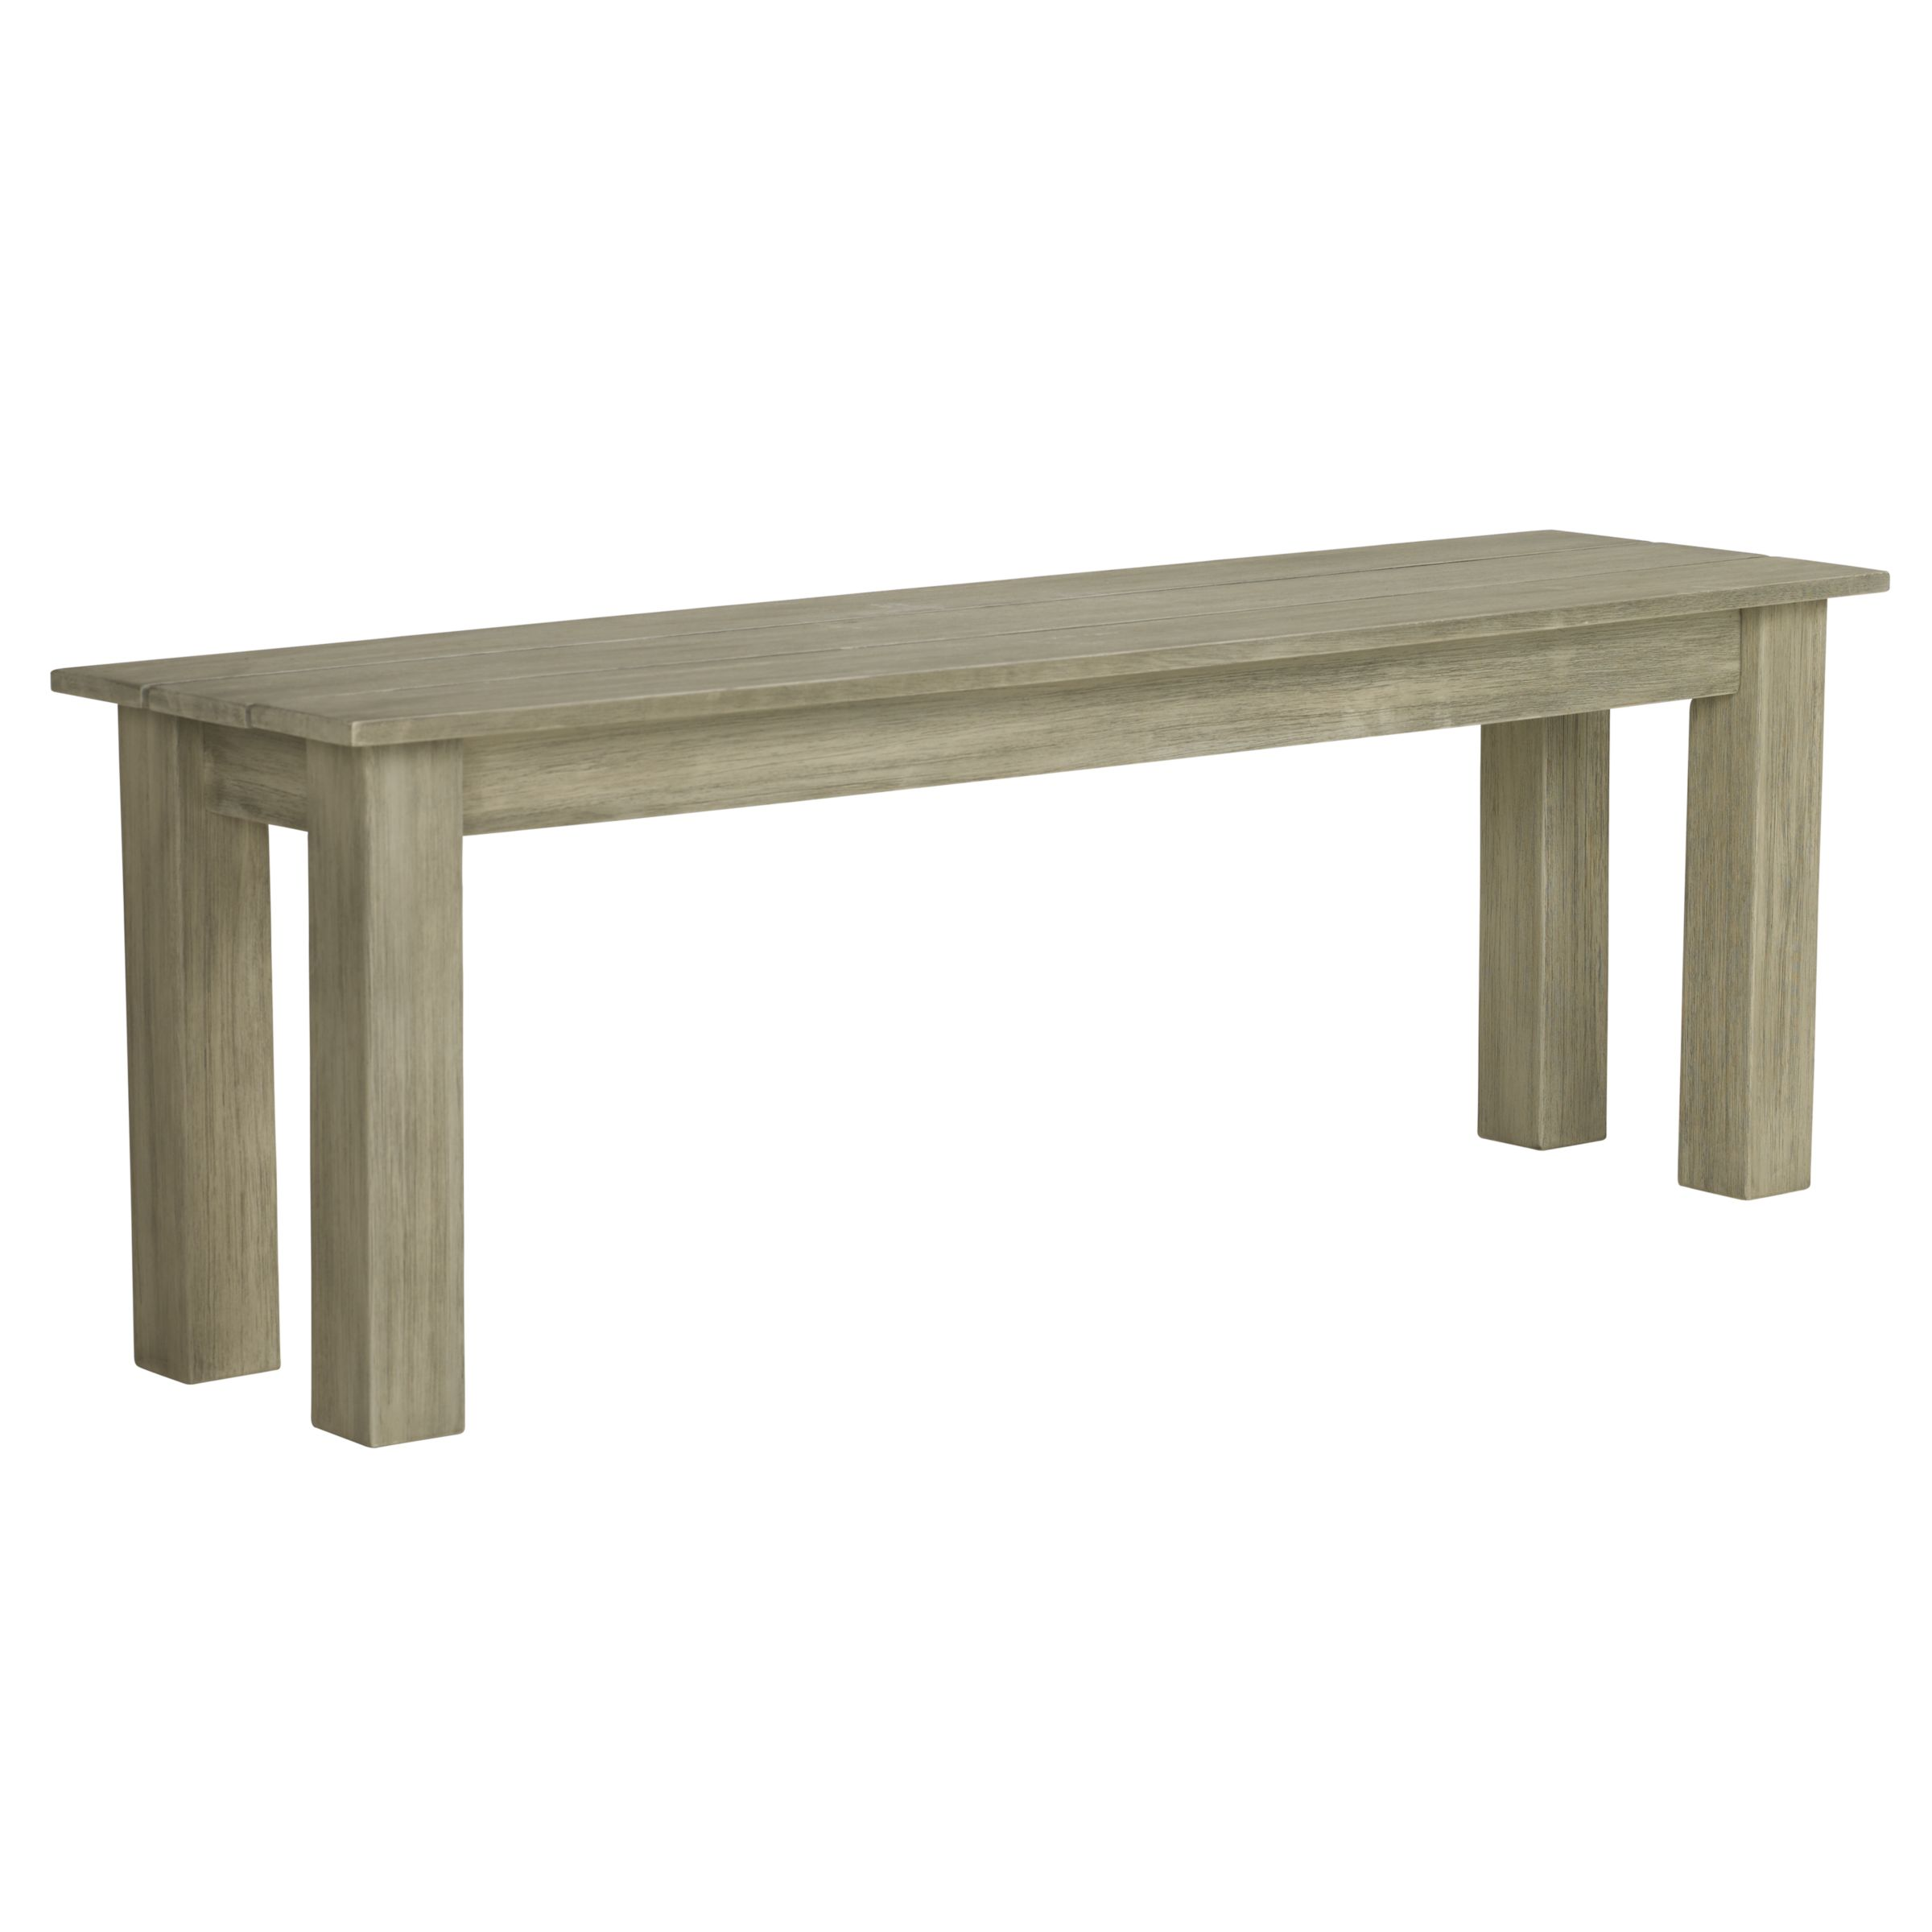 John Lewis Turin Outdoor Bench